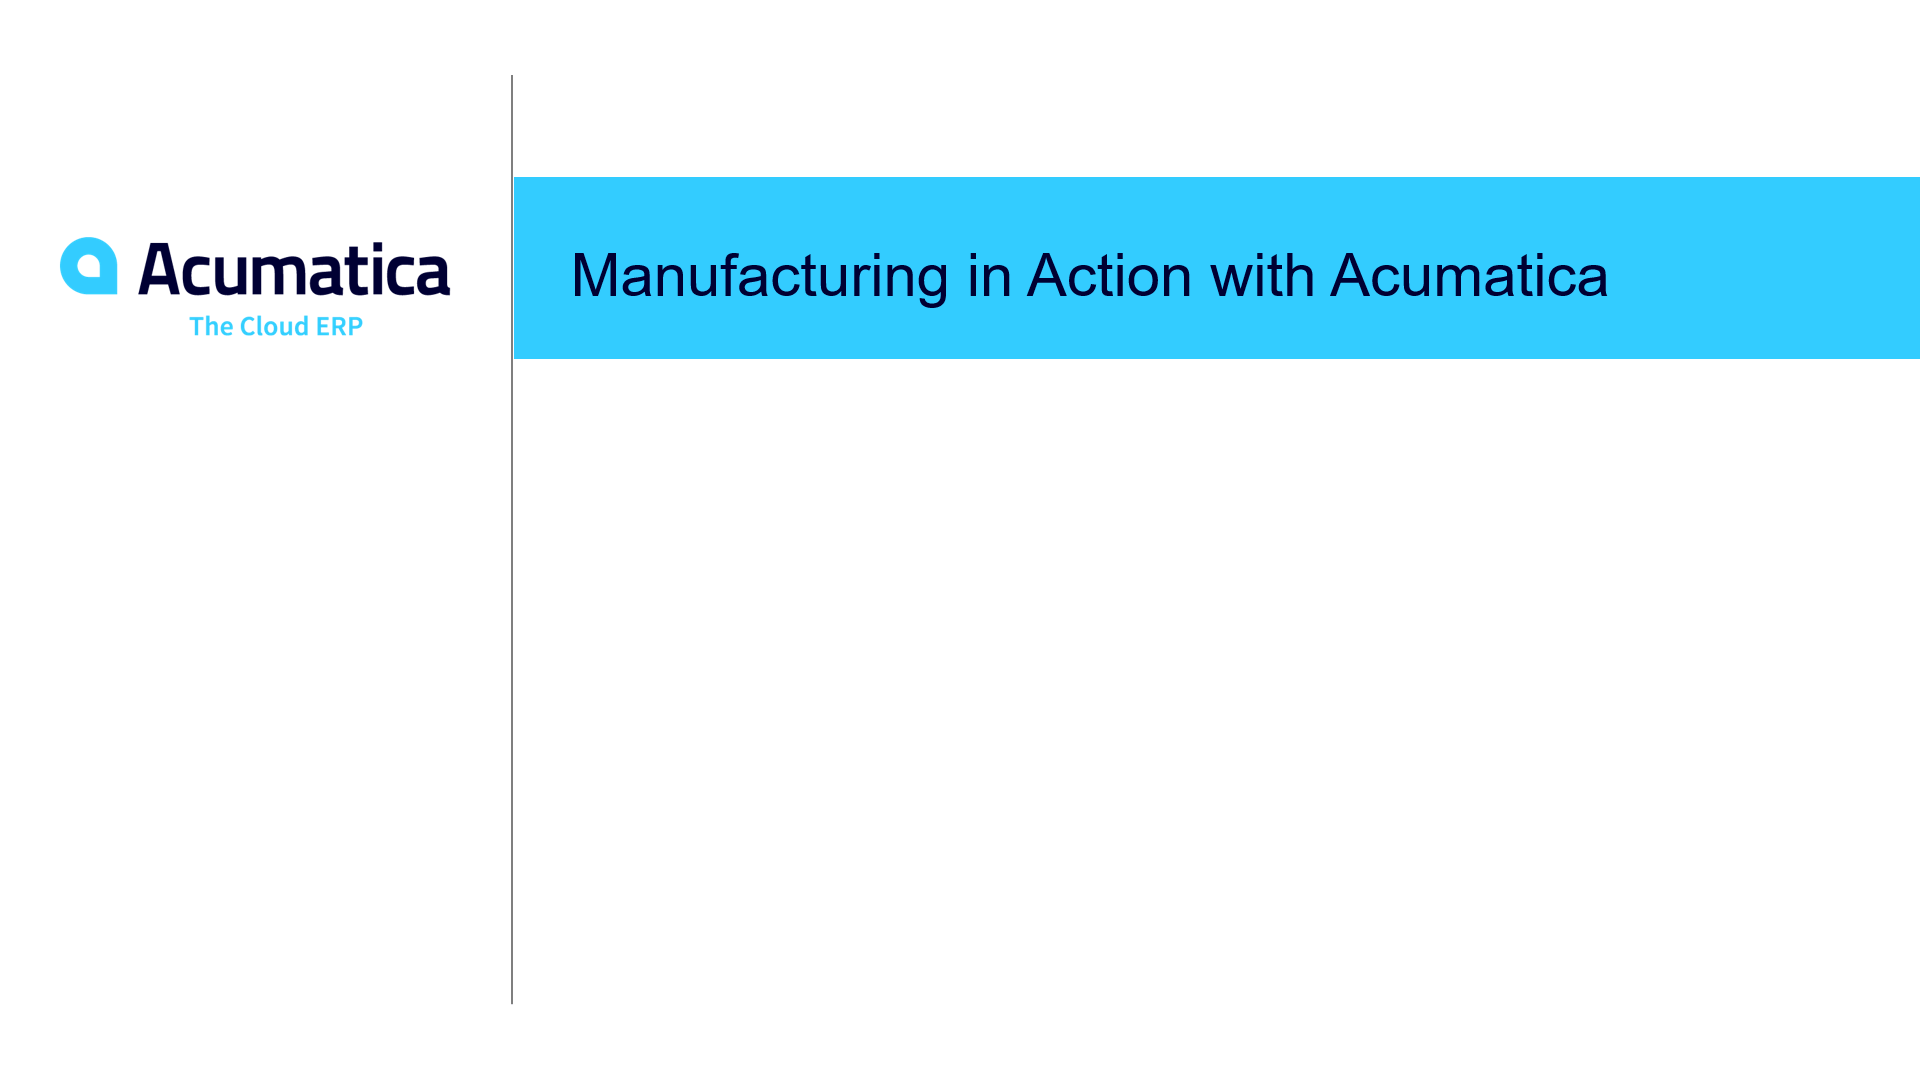 Manufacturing in Action with Acumatica (in 2.5 minutes)